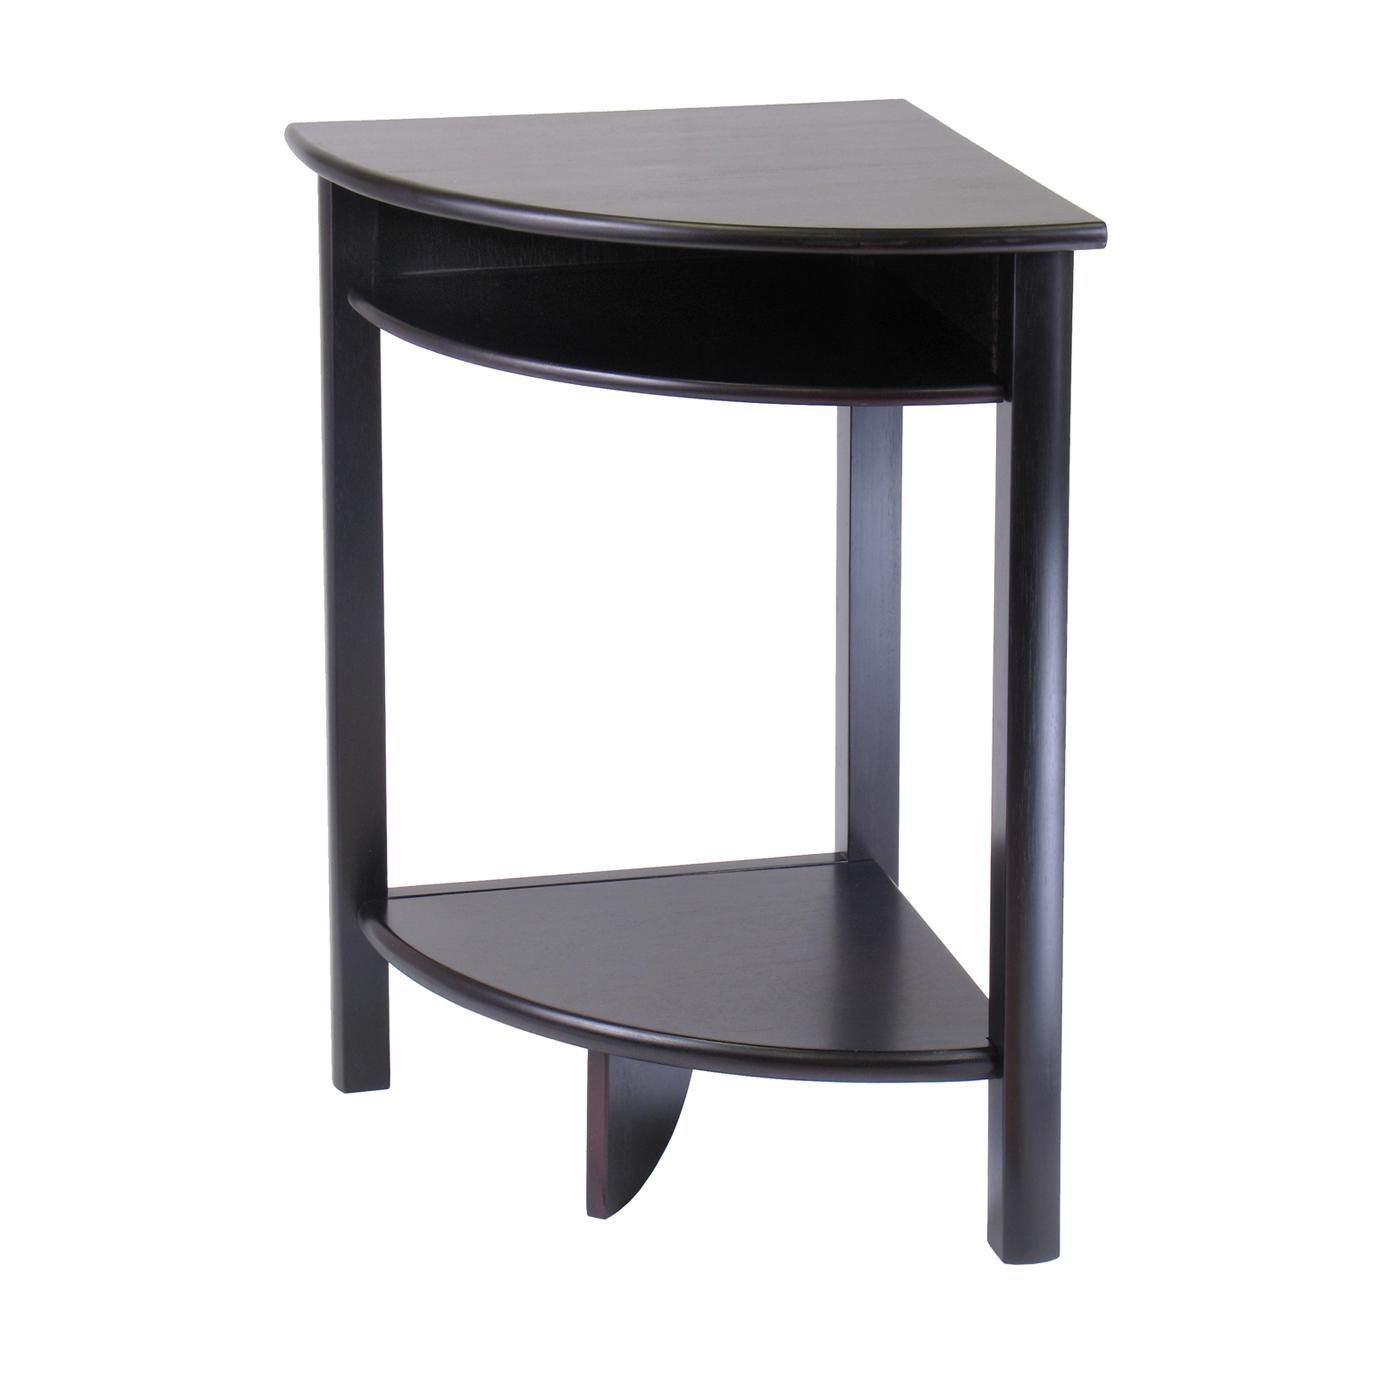 Awsemone Minimalist Corner Accent Table For Dining Room With Curve Design